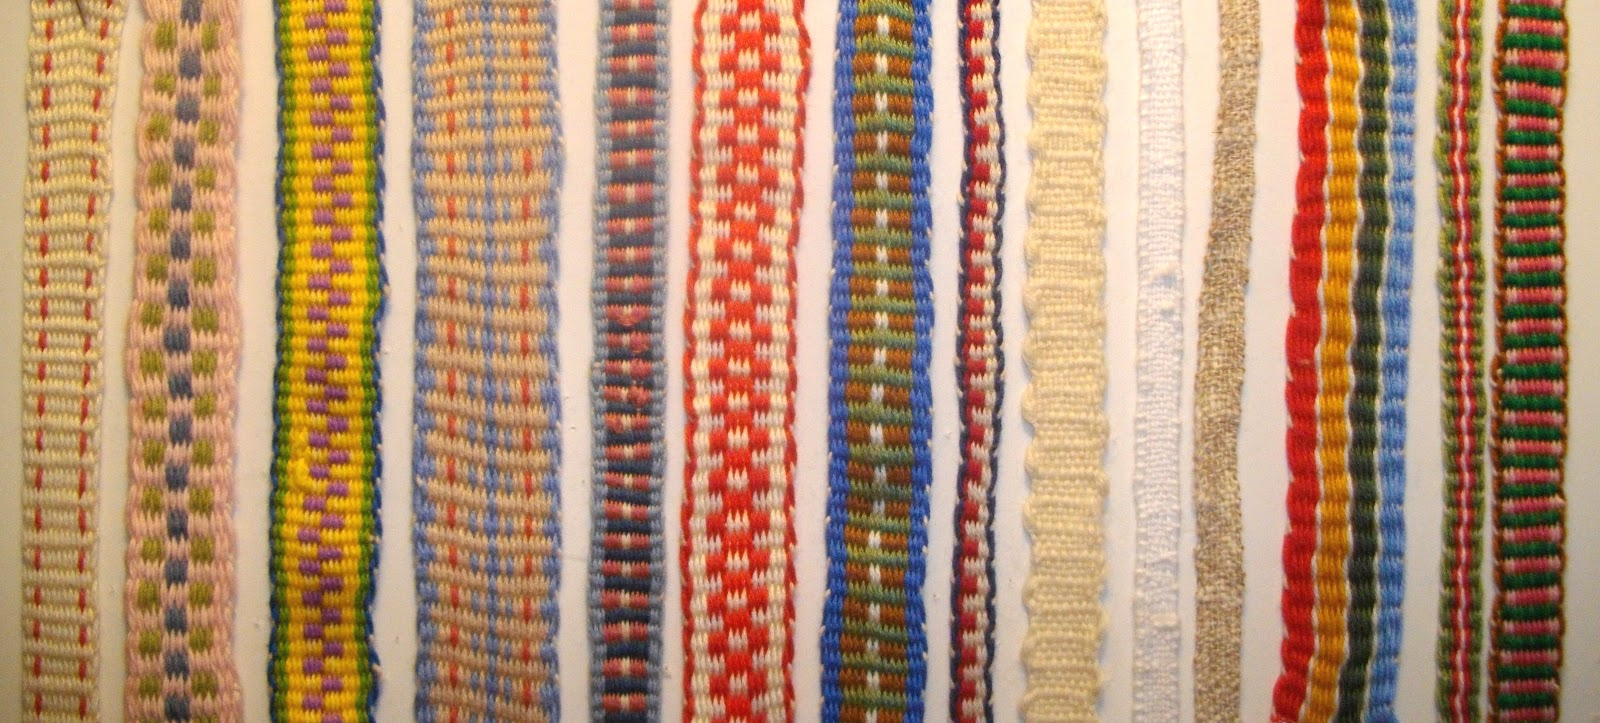 Loom Weaving Patterns Interesting Decorating Ideas